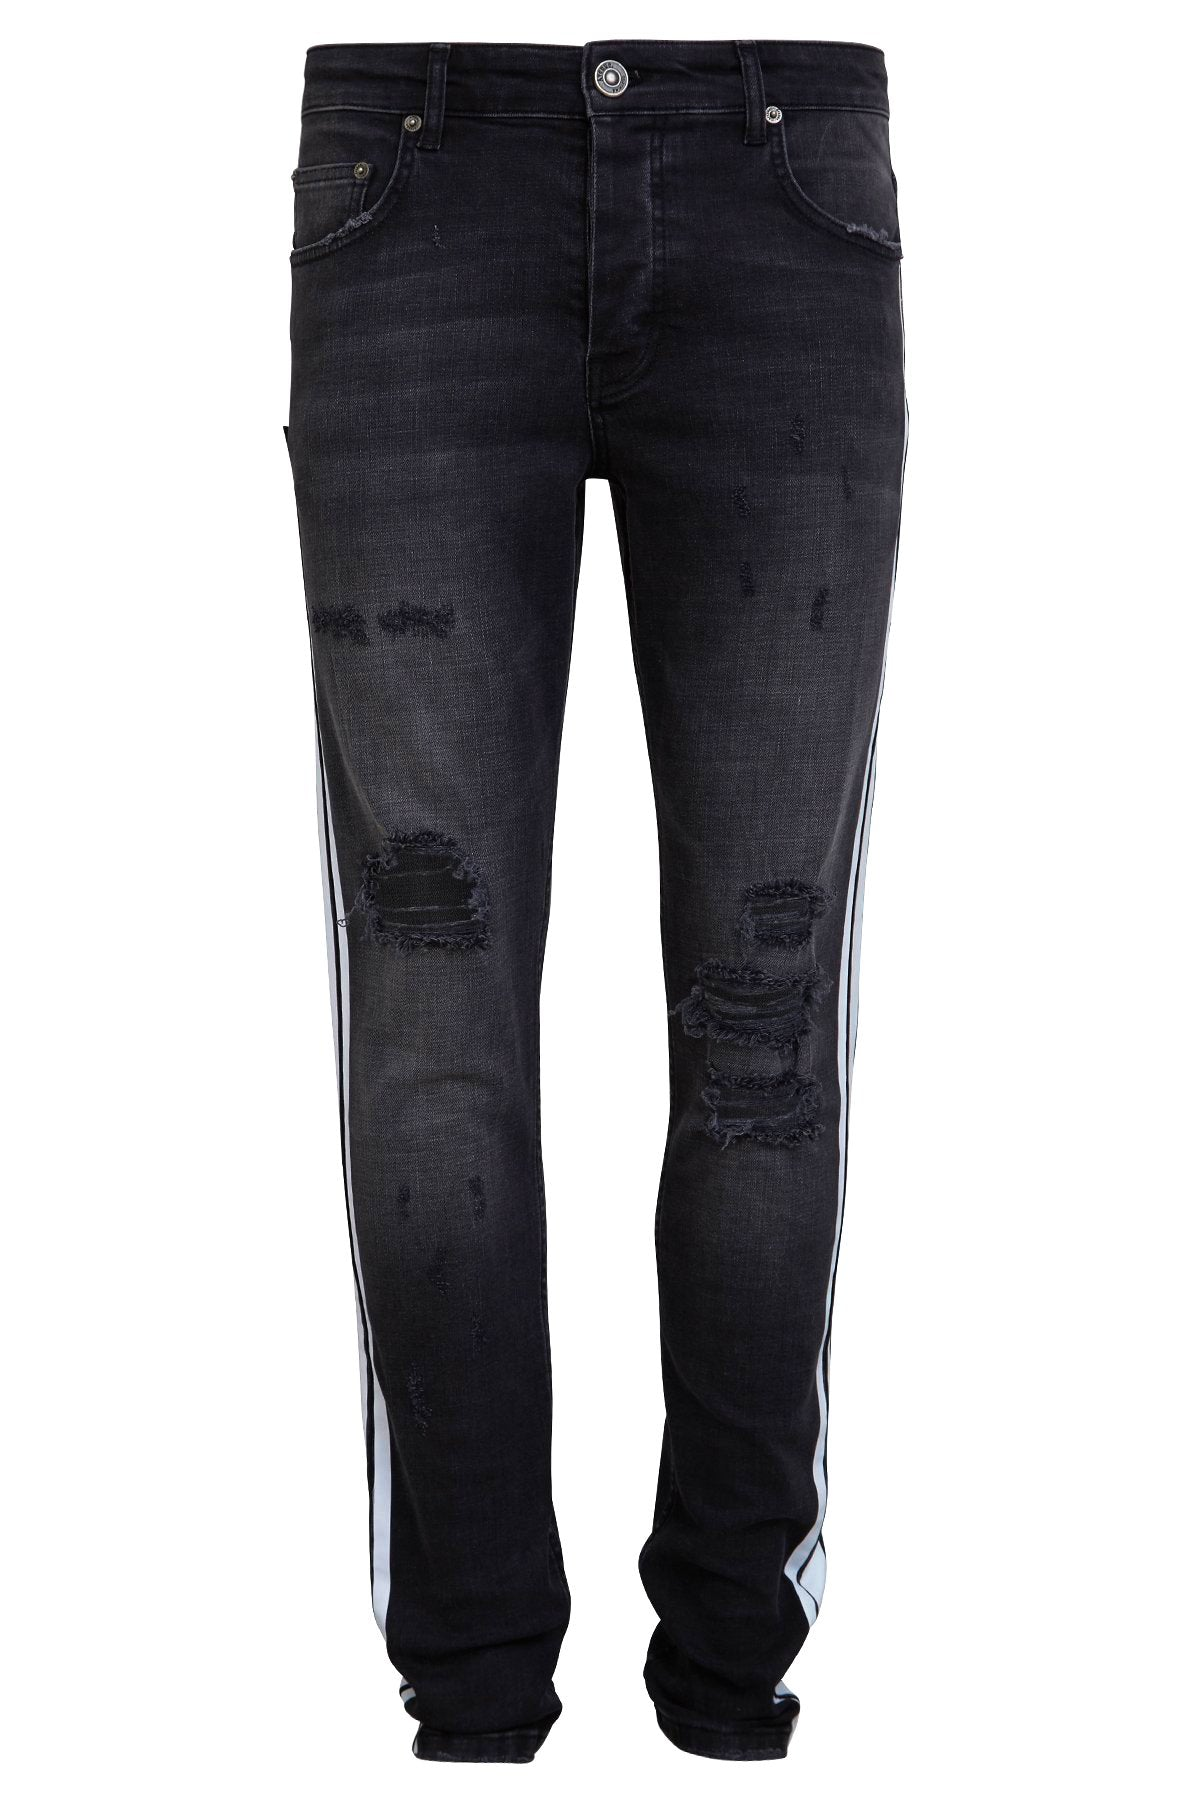 Striped Retro Skinny Jeans - Black Washed - Destroyed